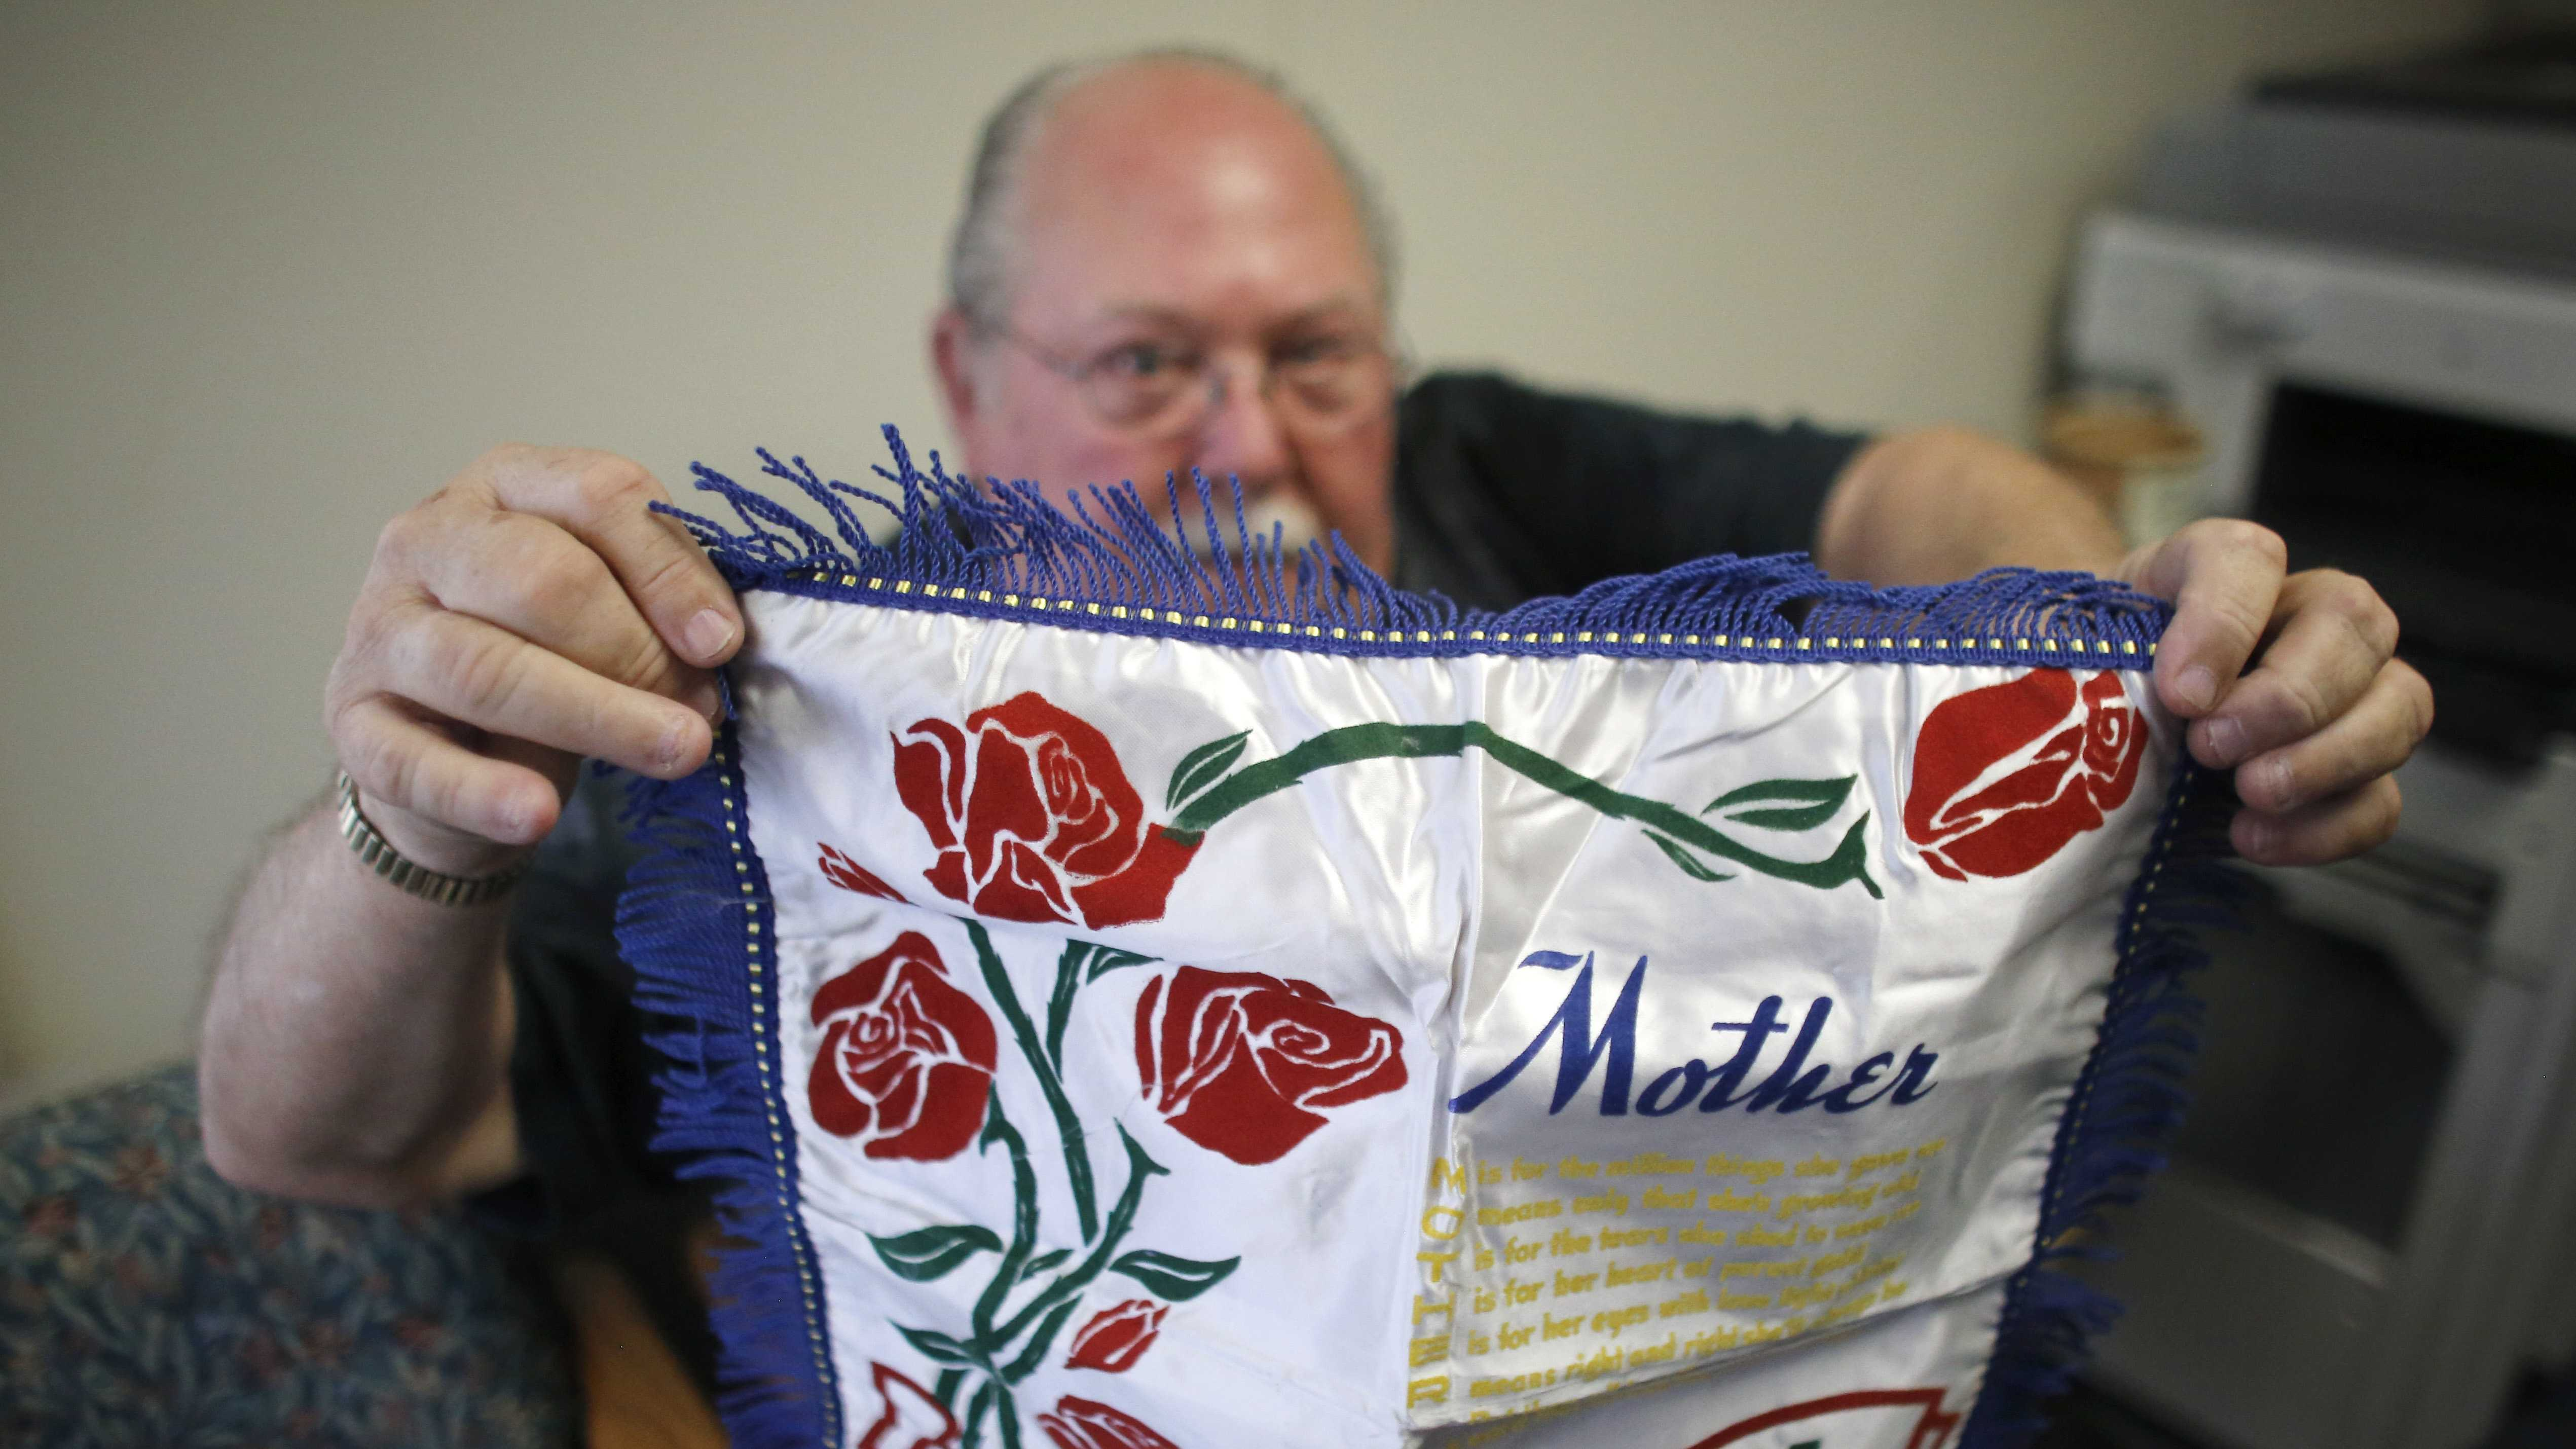 In this photo taken, Tuesday, May 5, 2015, Don Lamoureux displays a World War II era pillow sham at a senior center in Millville, Mass., which his son purchased from an online auction site. Dominic O'Gara had mailed the elaborate pillow sham from his U.S. Army base in California to his mother in Millville in 1942. The Lamoureux's tried to find the soldier's relatives to give it to them, but were unable to find any. The plan now is to put the sham on display in the town's senior center, just yards from the house where the O'Gara family once lived.